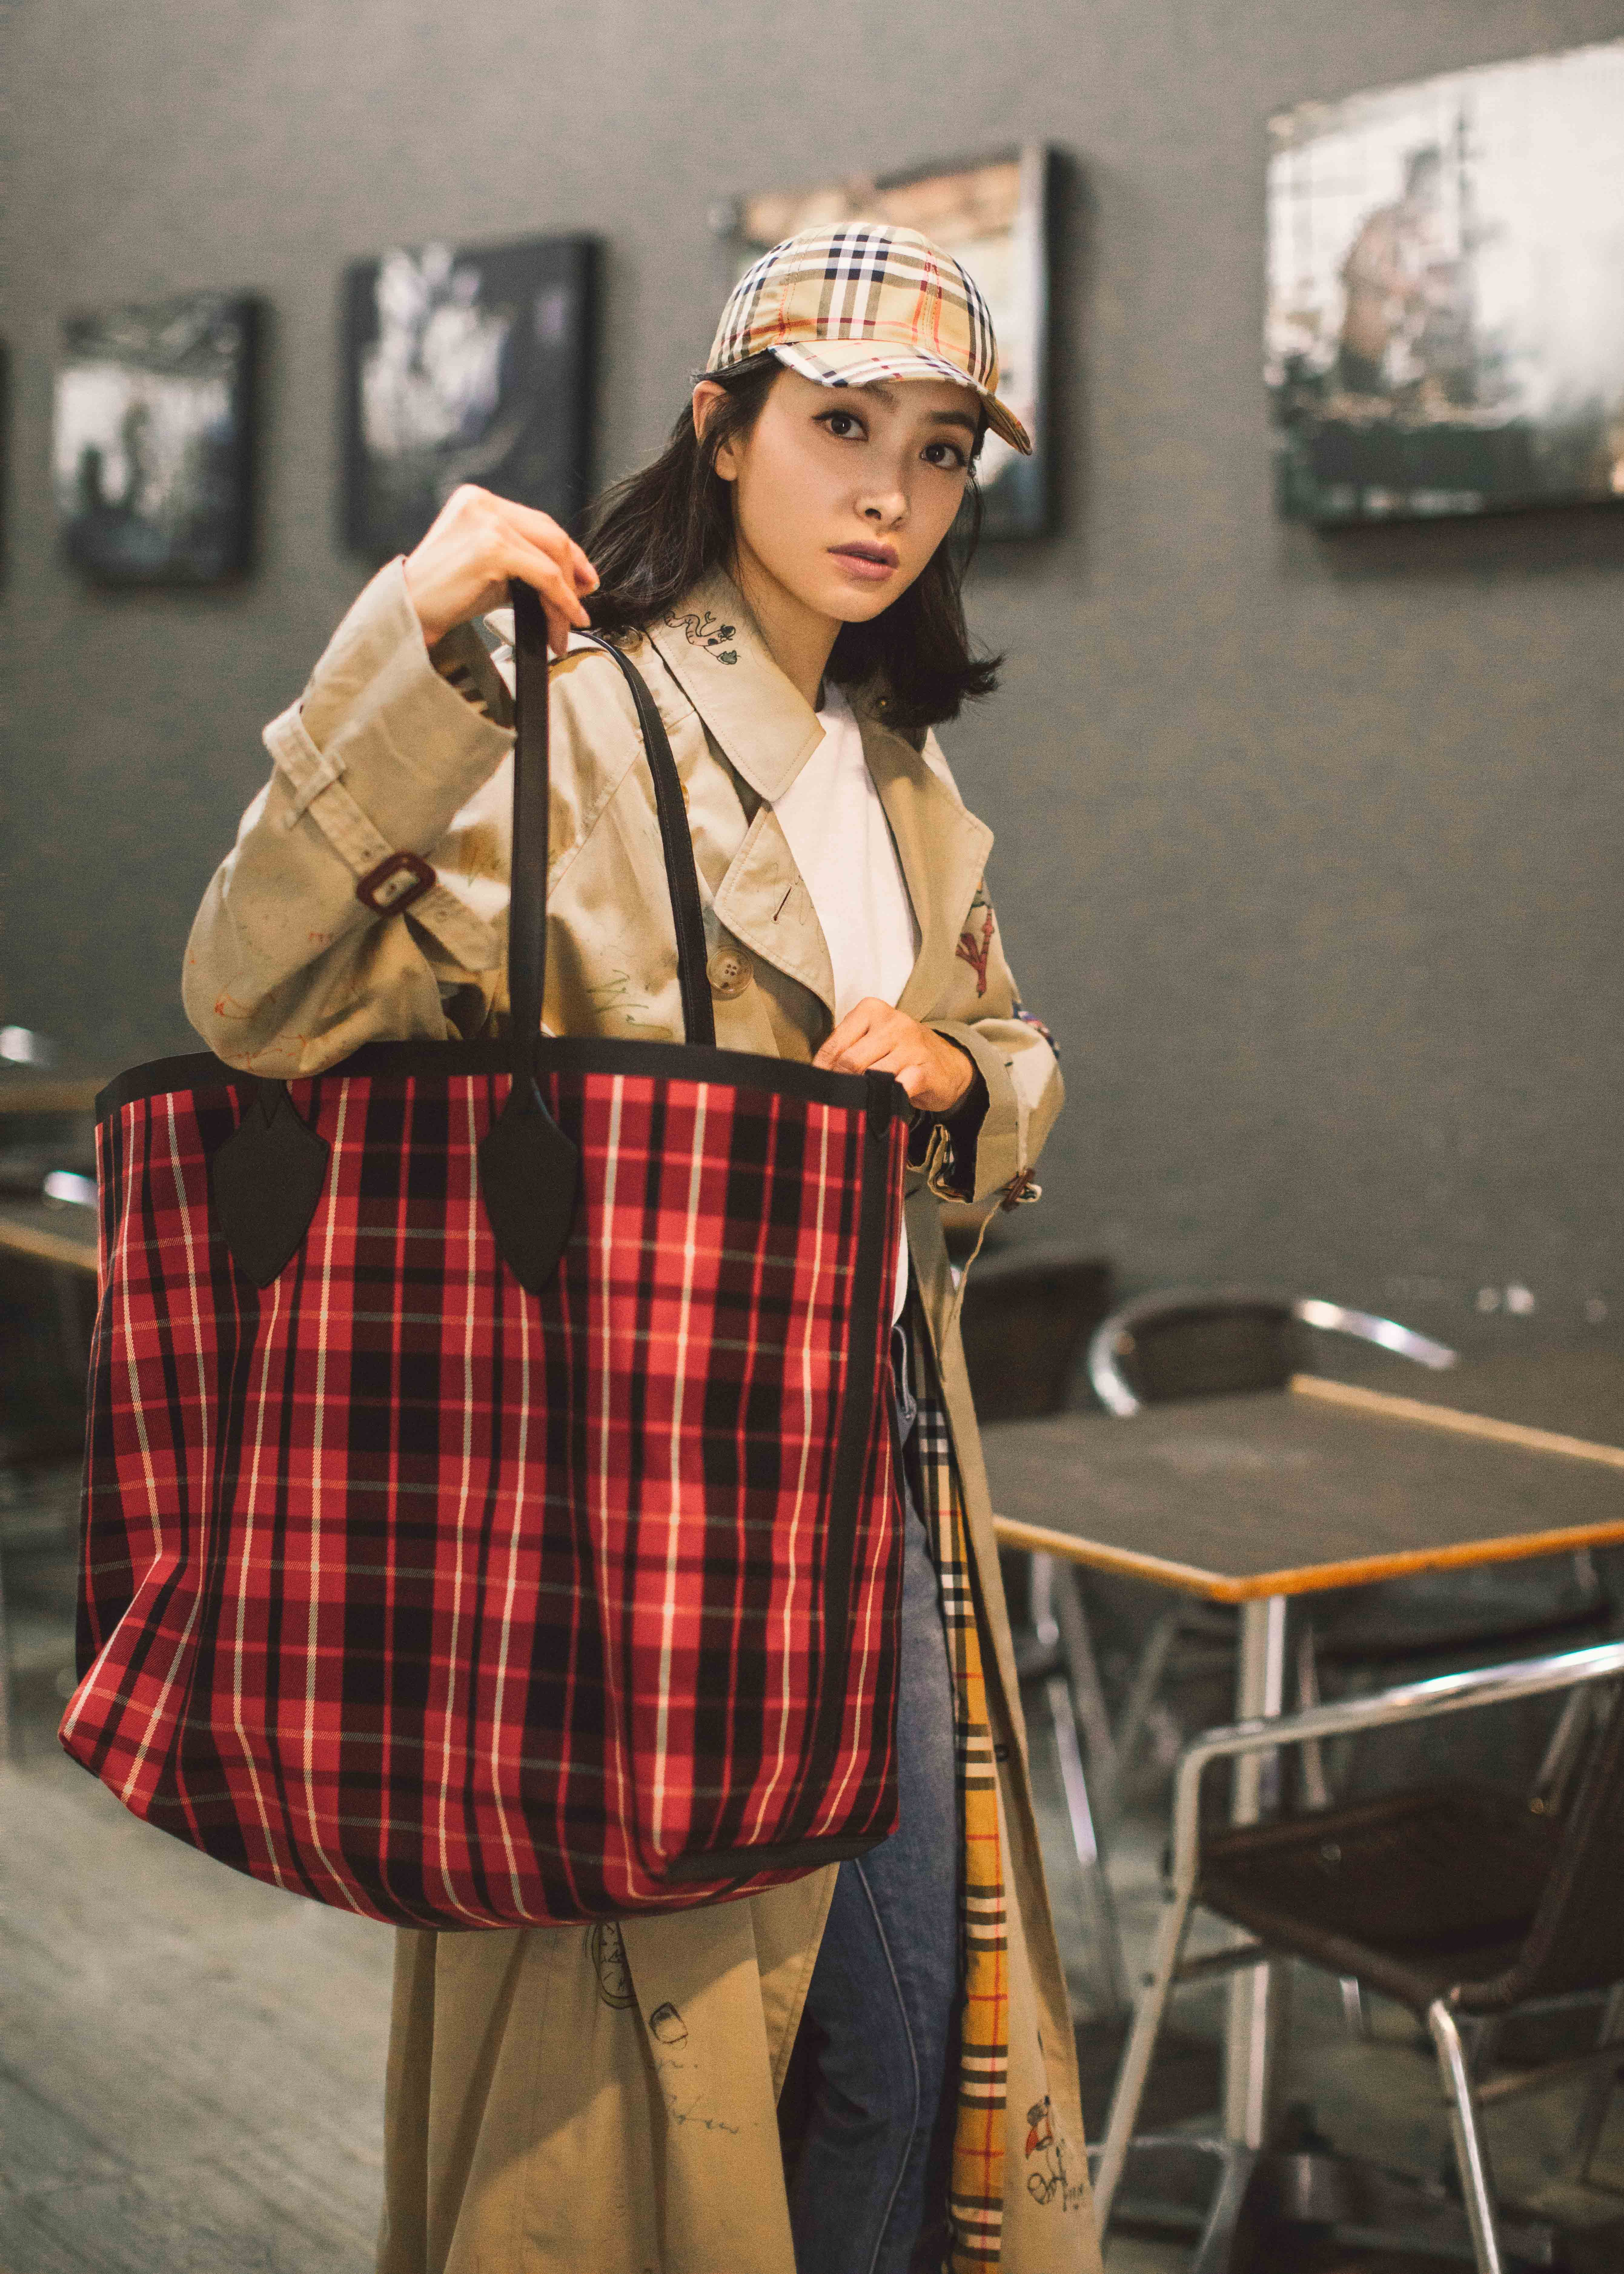 Singer victoria song wears the new burberry sketch print trench coat styled with the giant tote and a vintage check cap in thailand